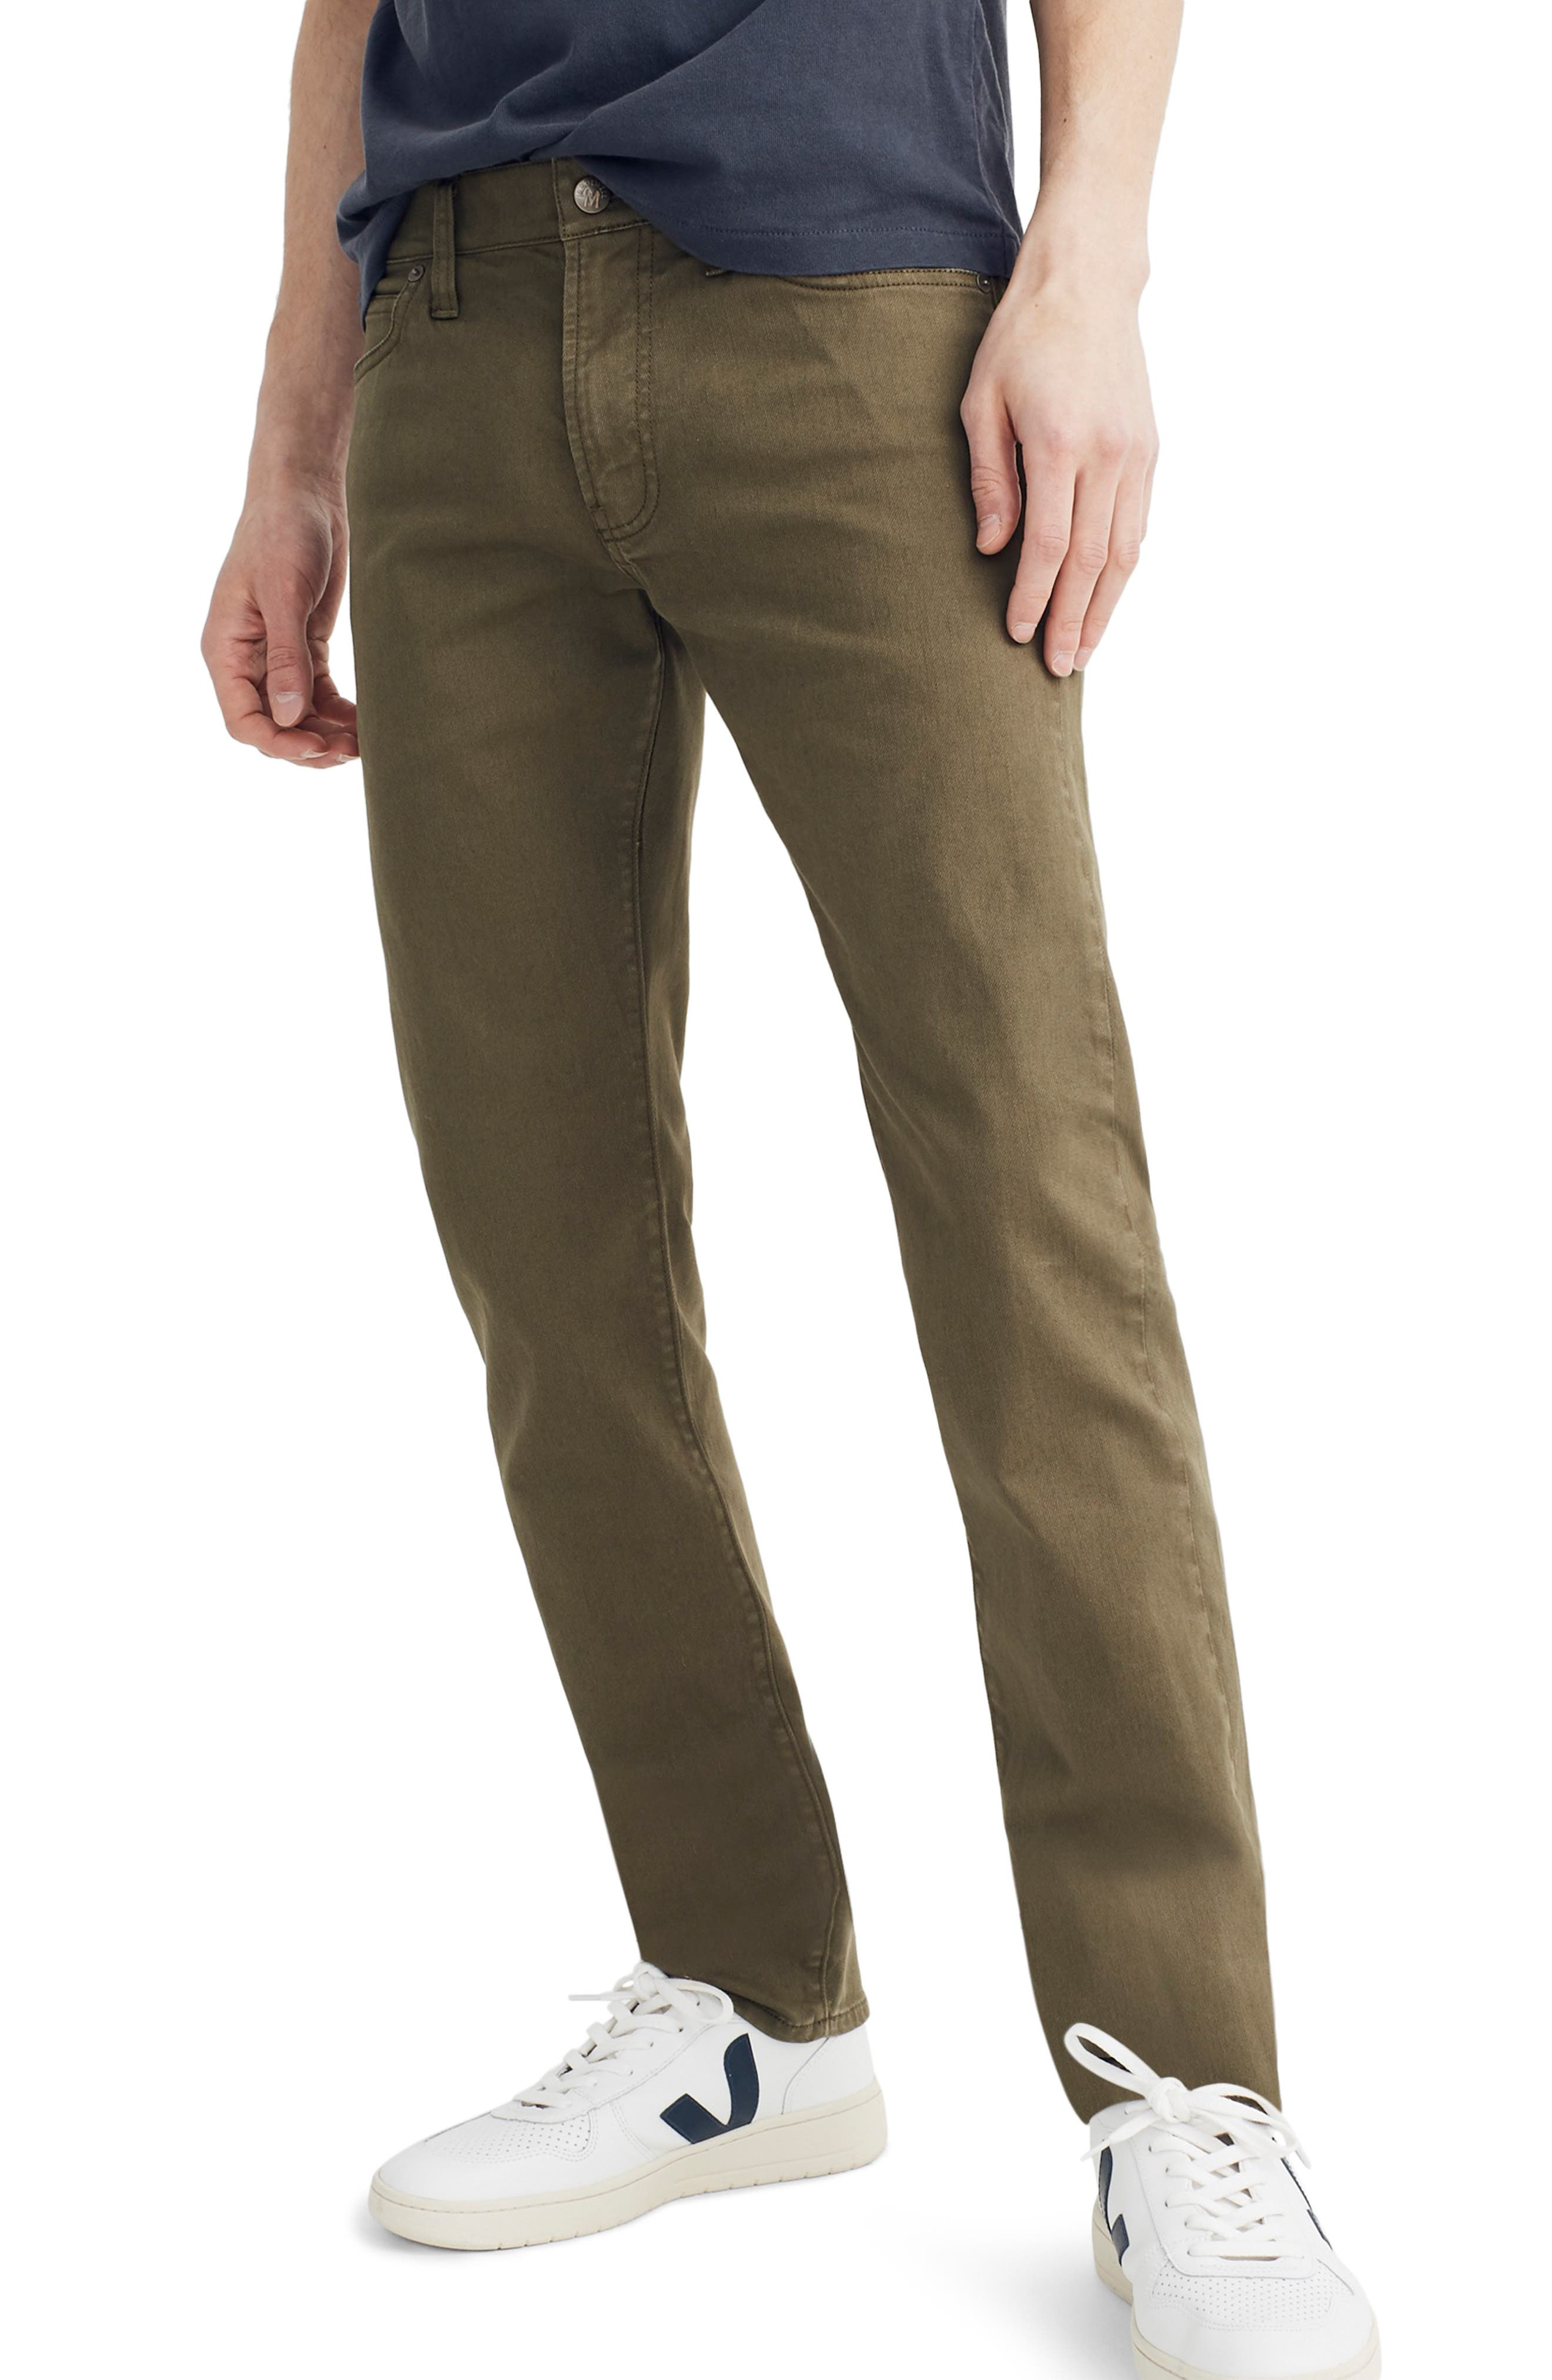 MADEWELL Garment Dyed Slim Fit Jeans, Main, color, FADED IVY